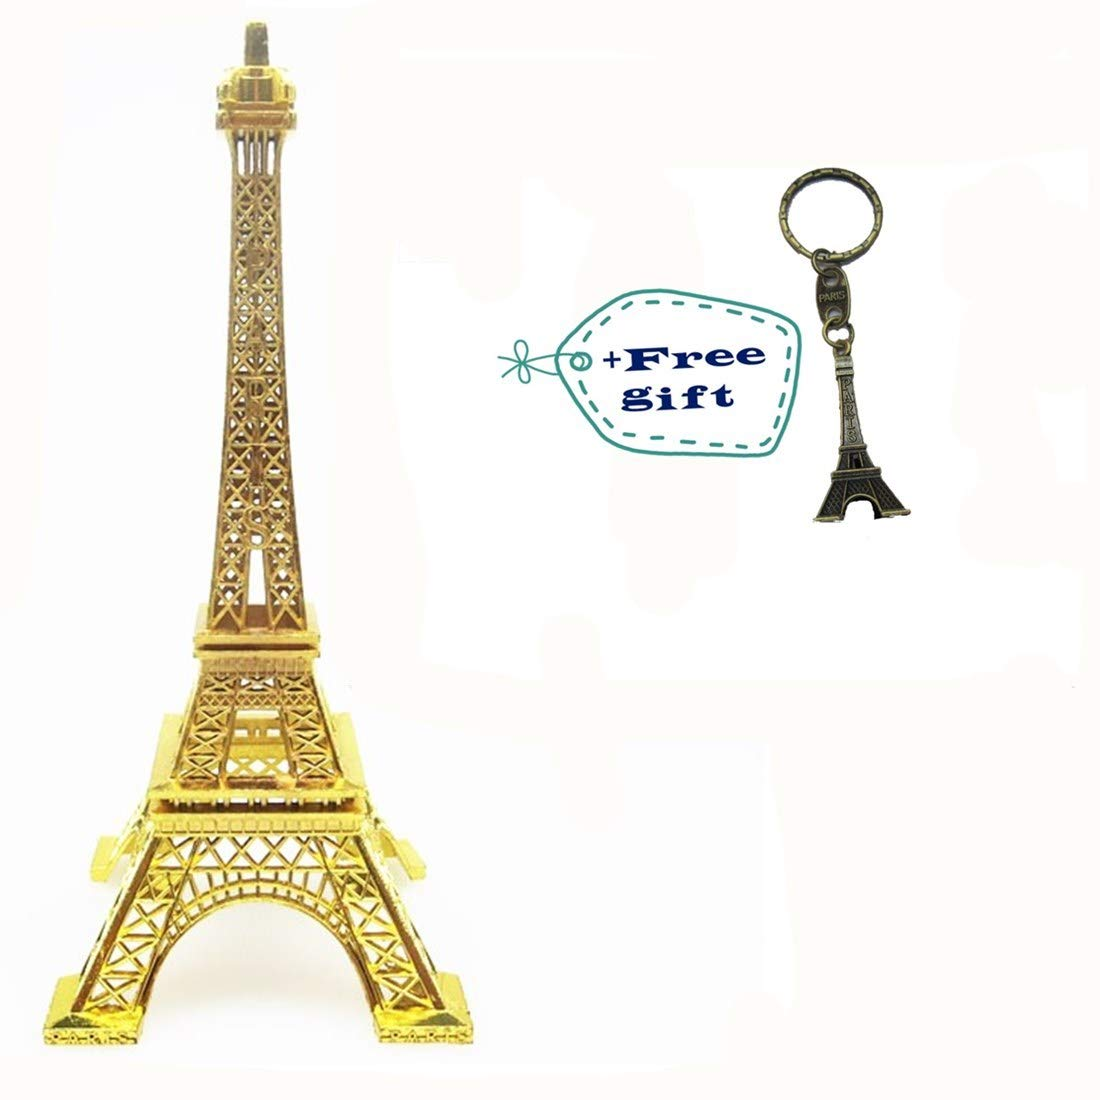 Eiffel Tower Paris France Metal Stand Statue Model for Home Decor or Wedding Theme (10 Inches) EST